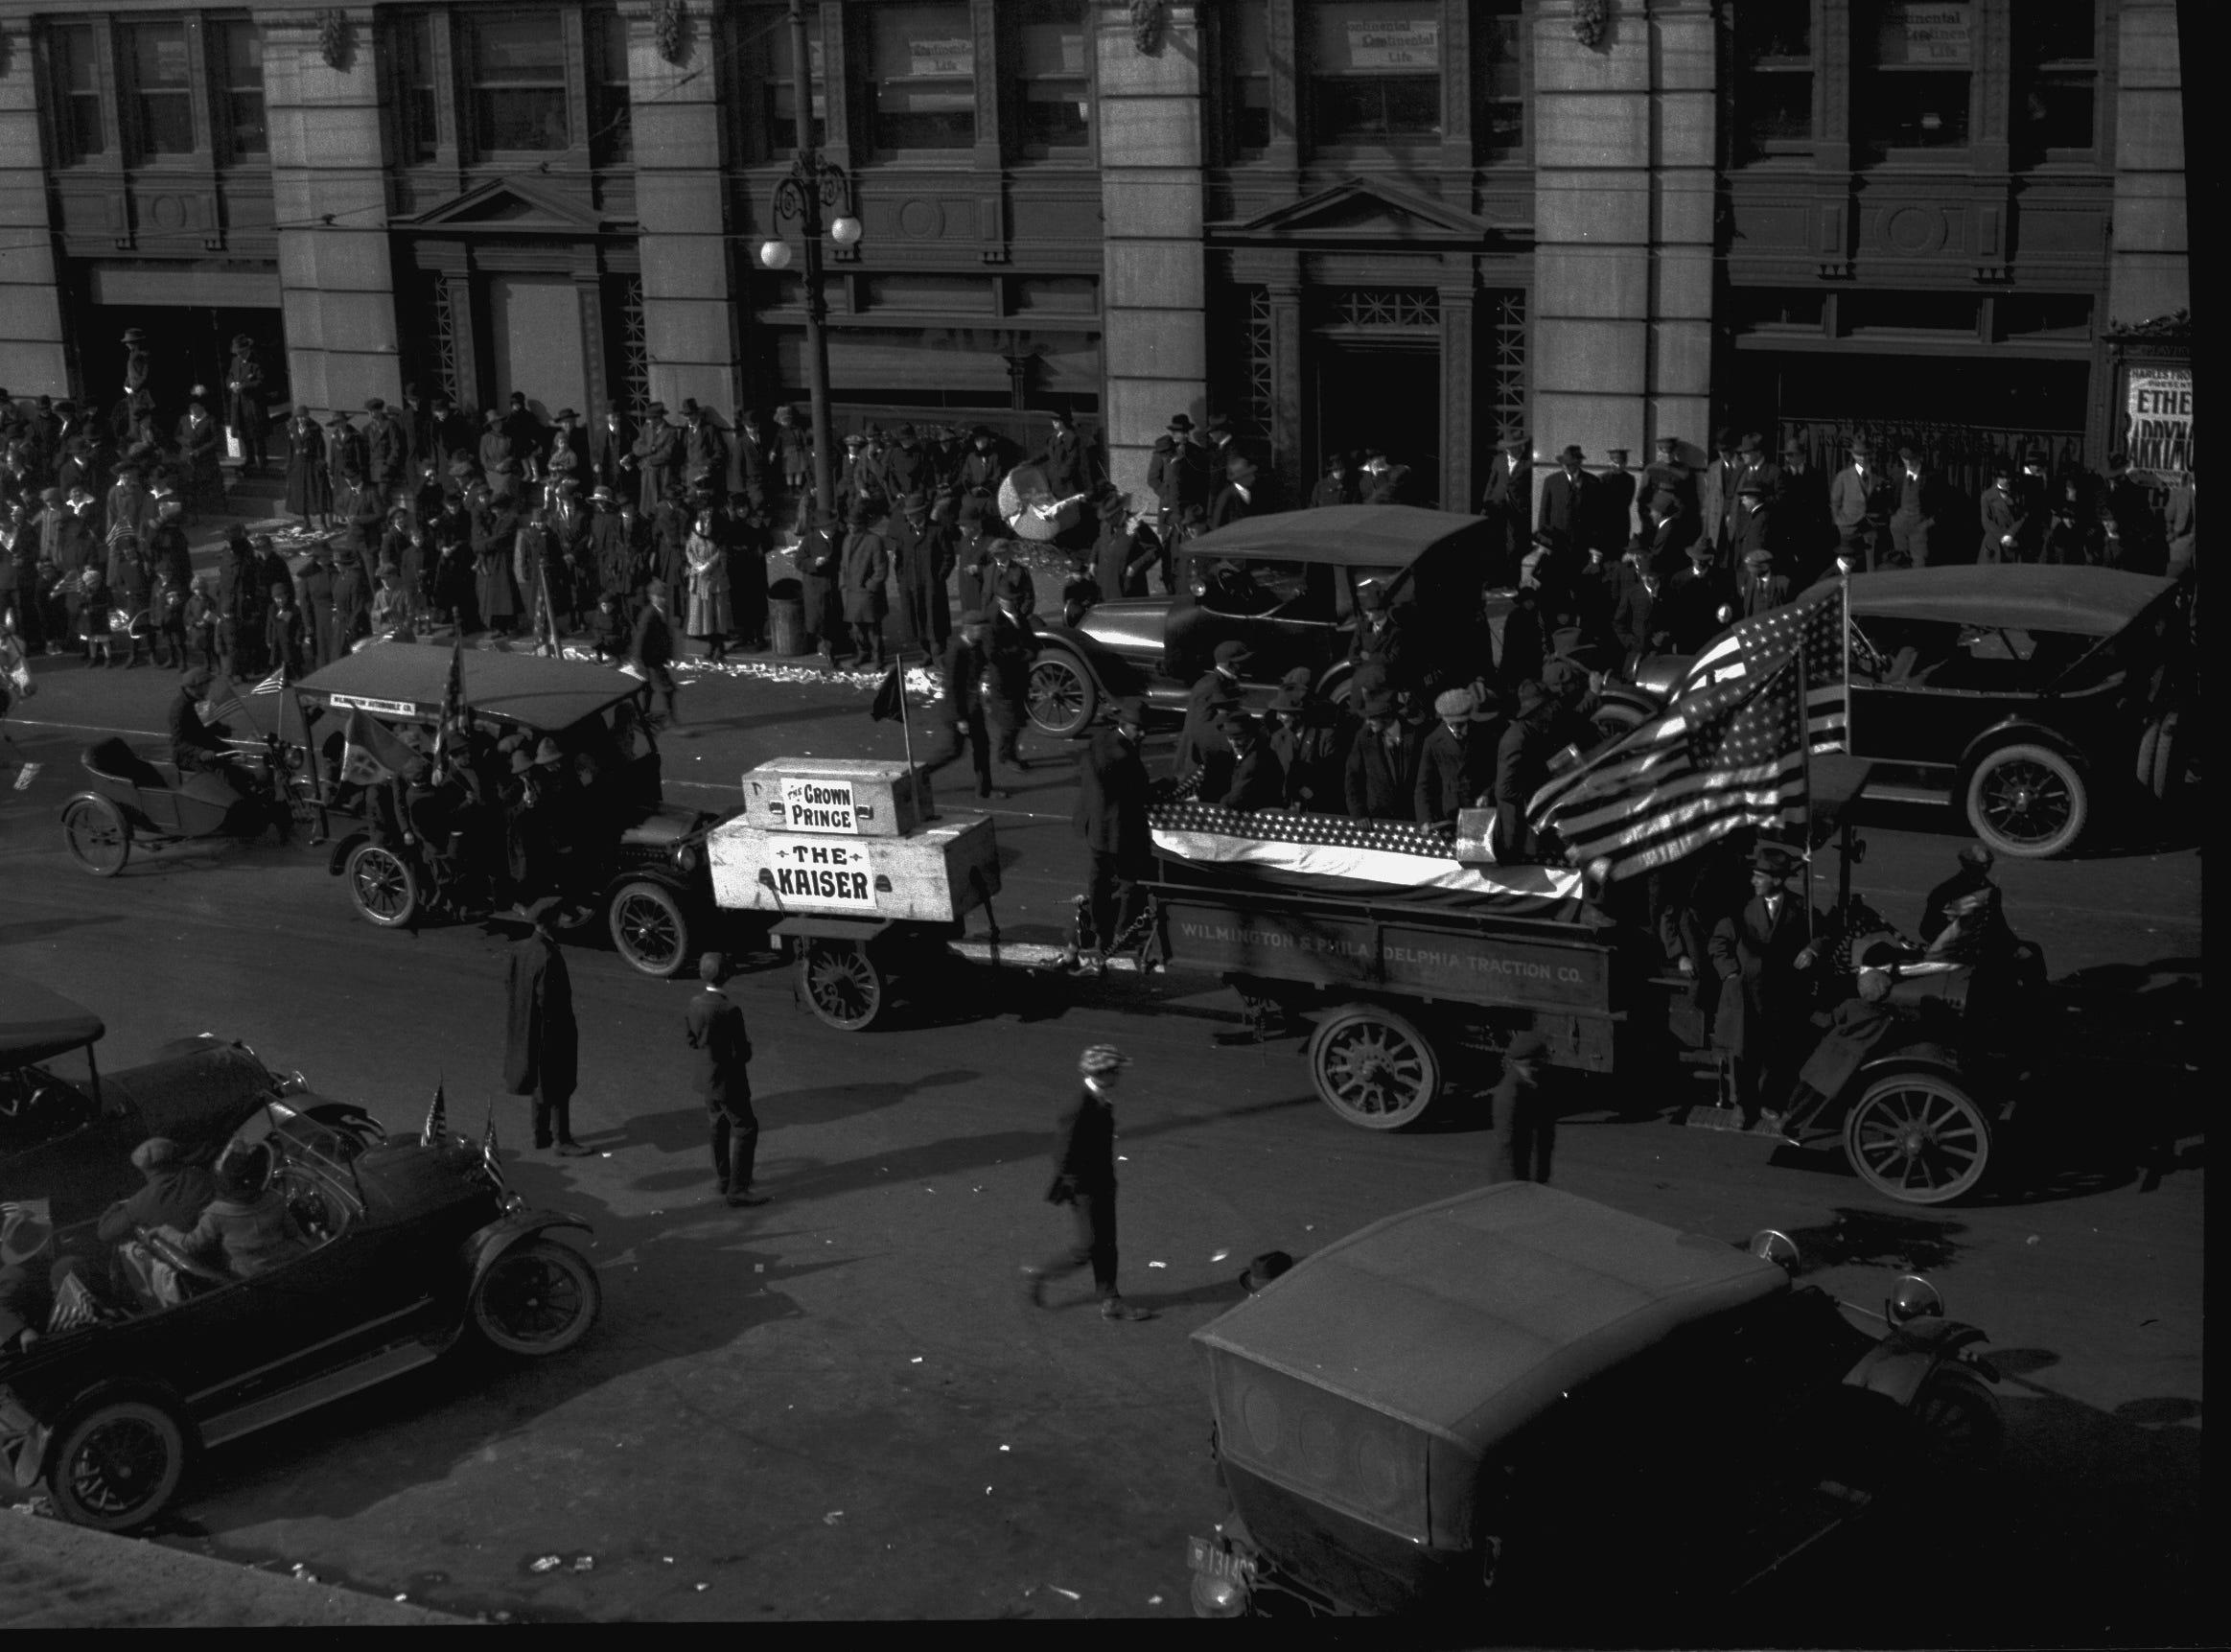 """A large casket marked """"The Kaiser"""" topped with a smaller one marked """"Crown Prince"""" in the Wilmington Peace Parade after Armistice Day in 1918."""